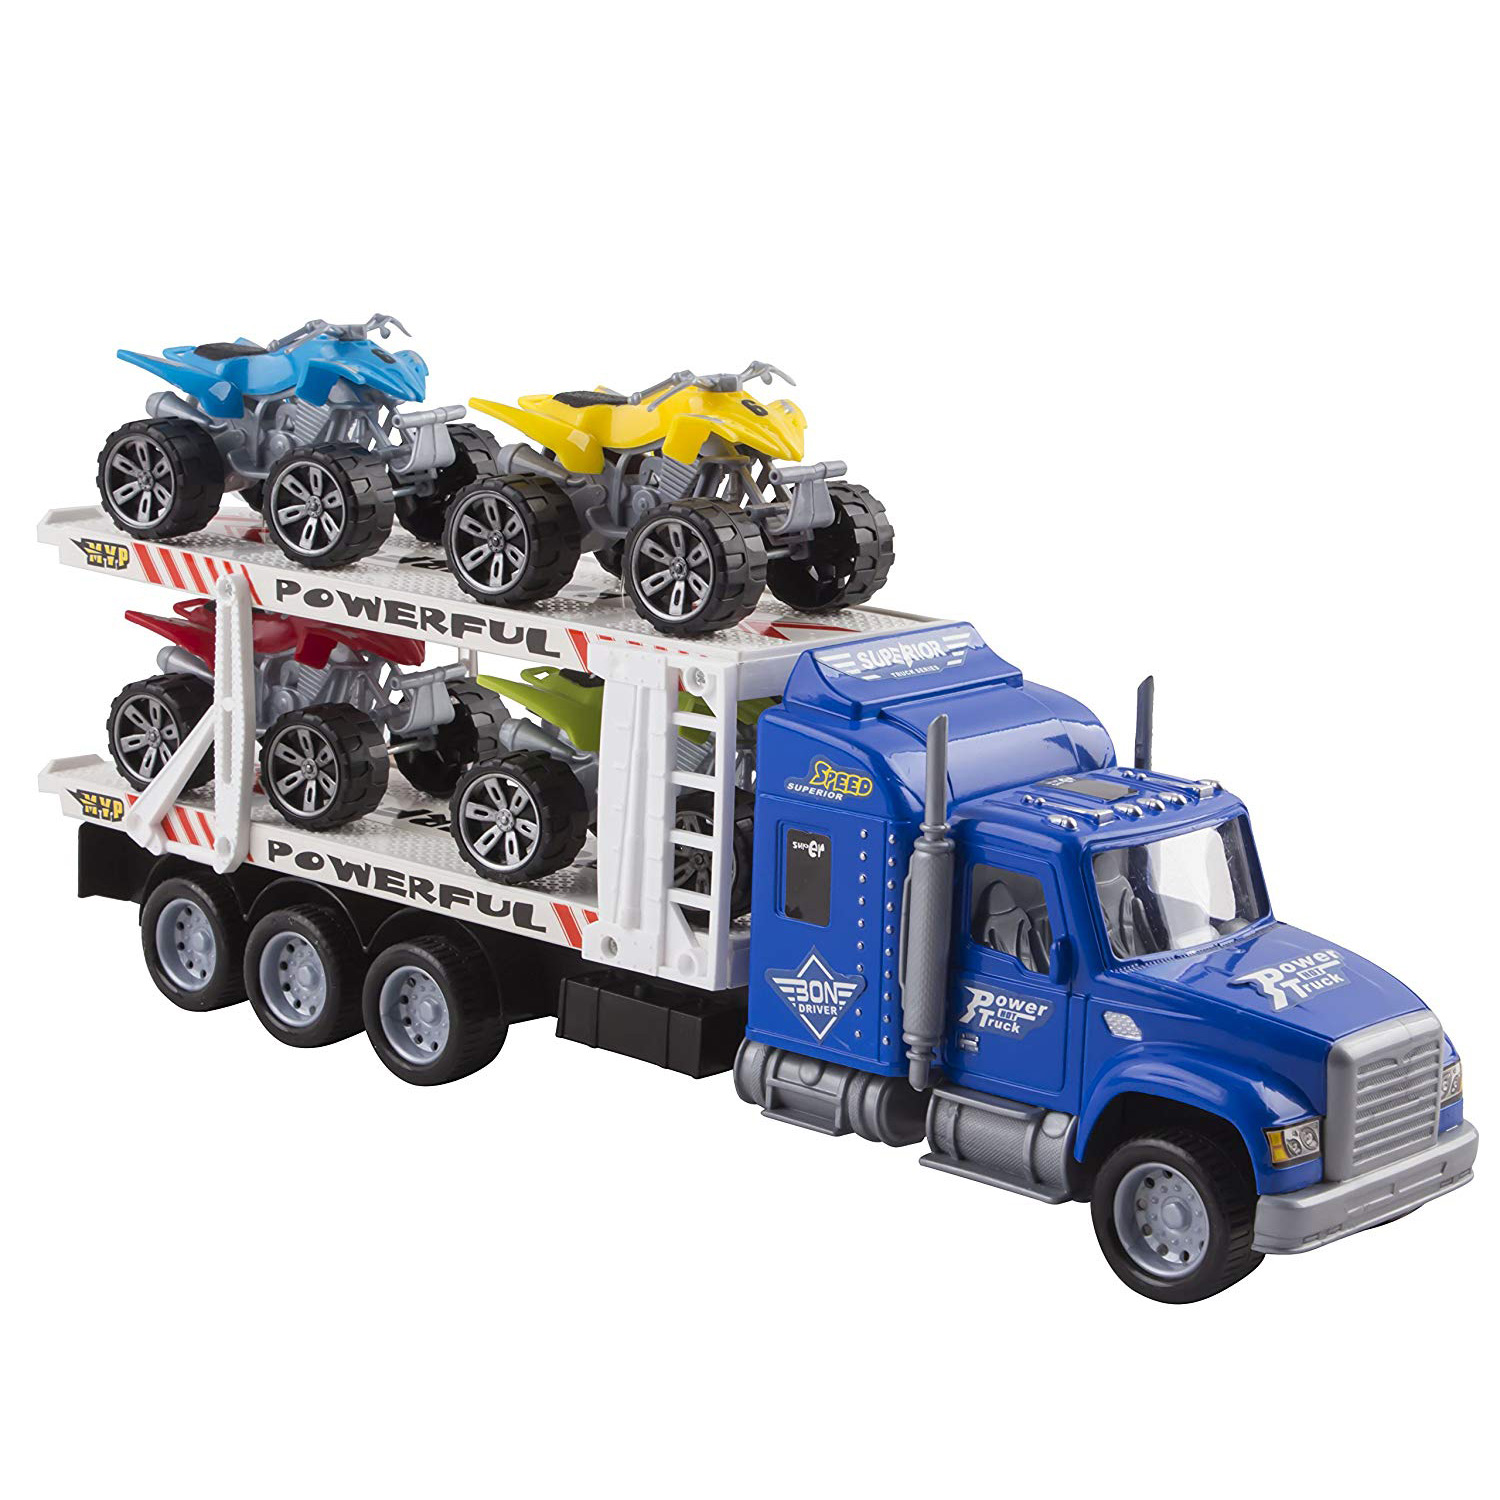 "Toy Truck Transporter Trailer 14.5"" Children's Friction Big Rig With 4 ATV Toys No Batteries Or Assembly Required Perfect Semi Truck For Kids (Blue Truck)"